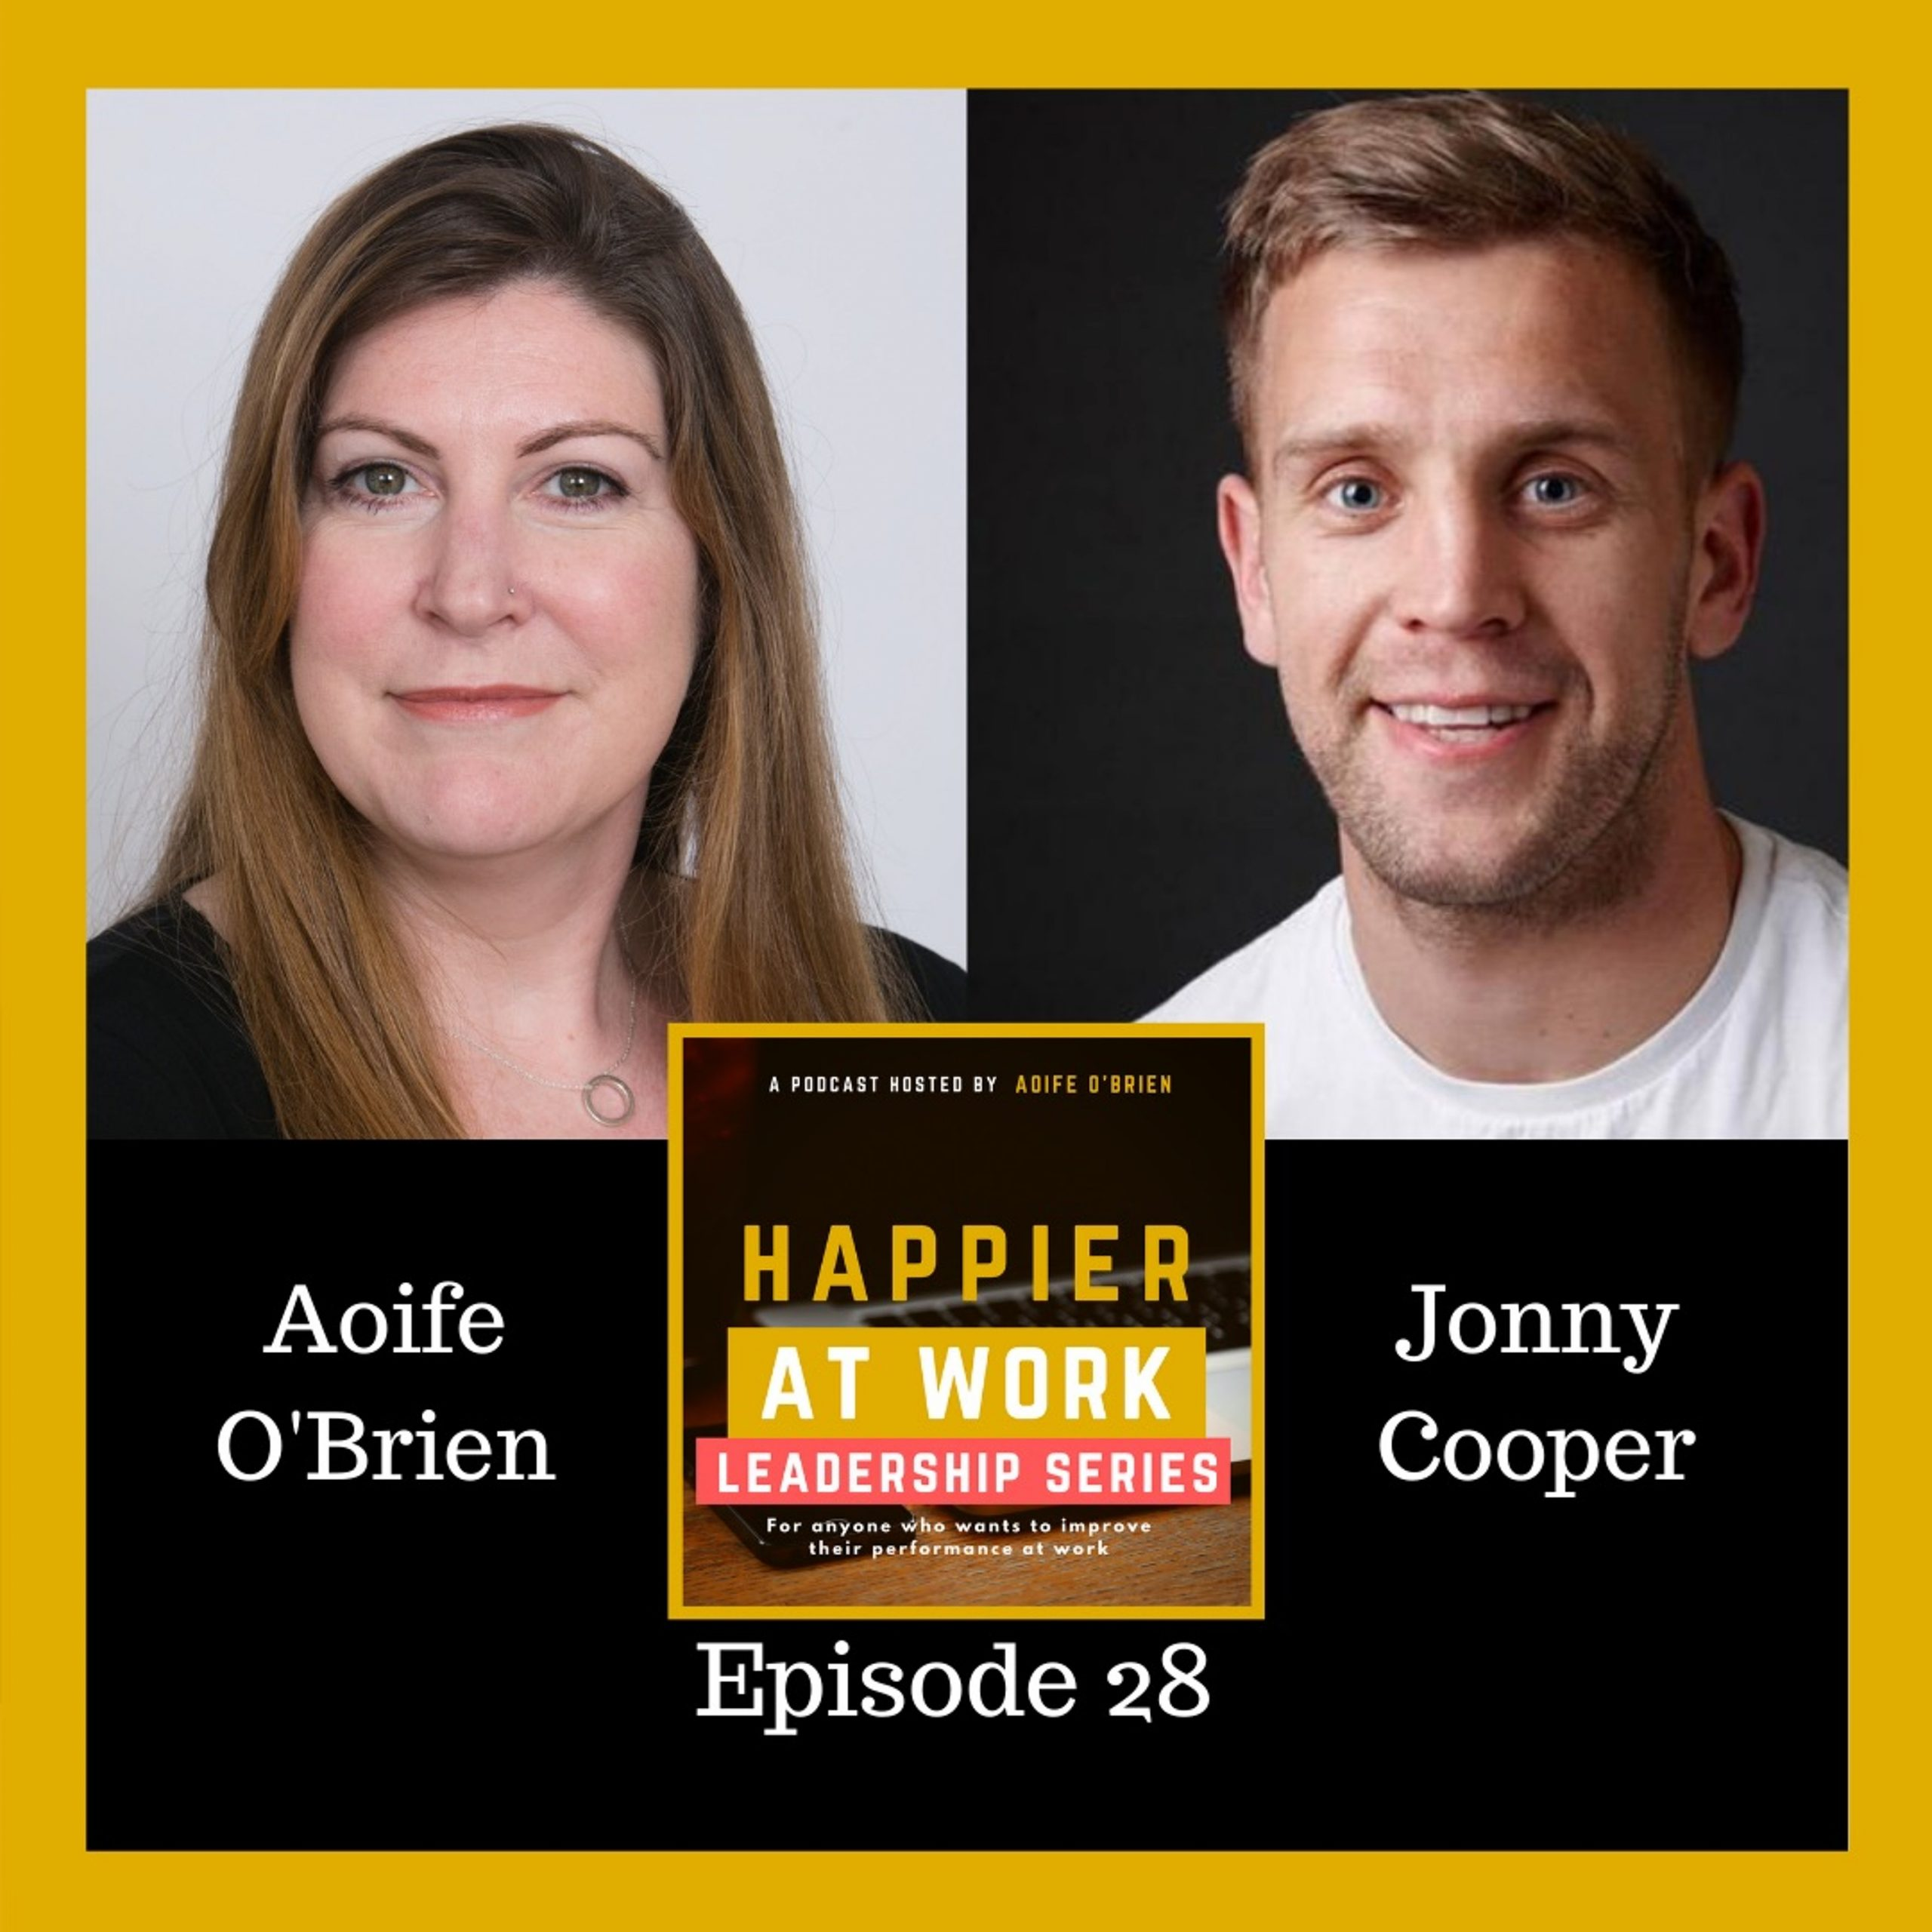 Happier at Work podcast Jonny Cooper